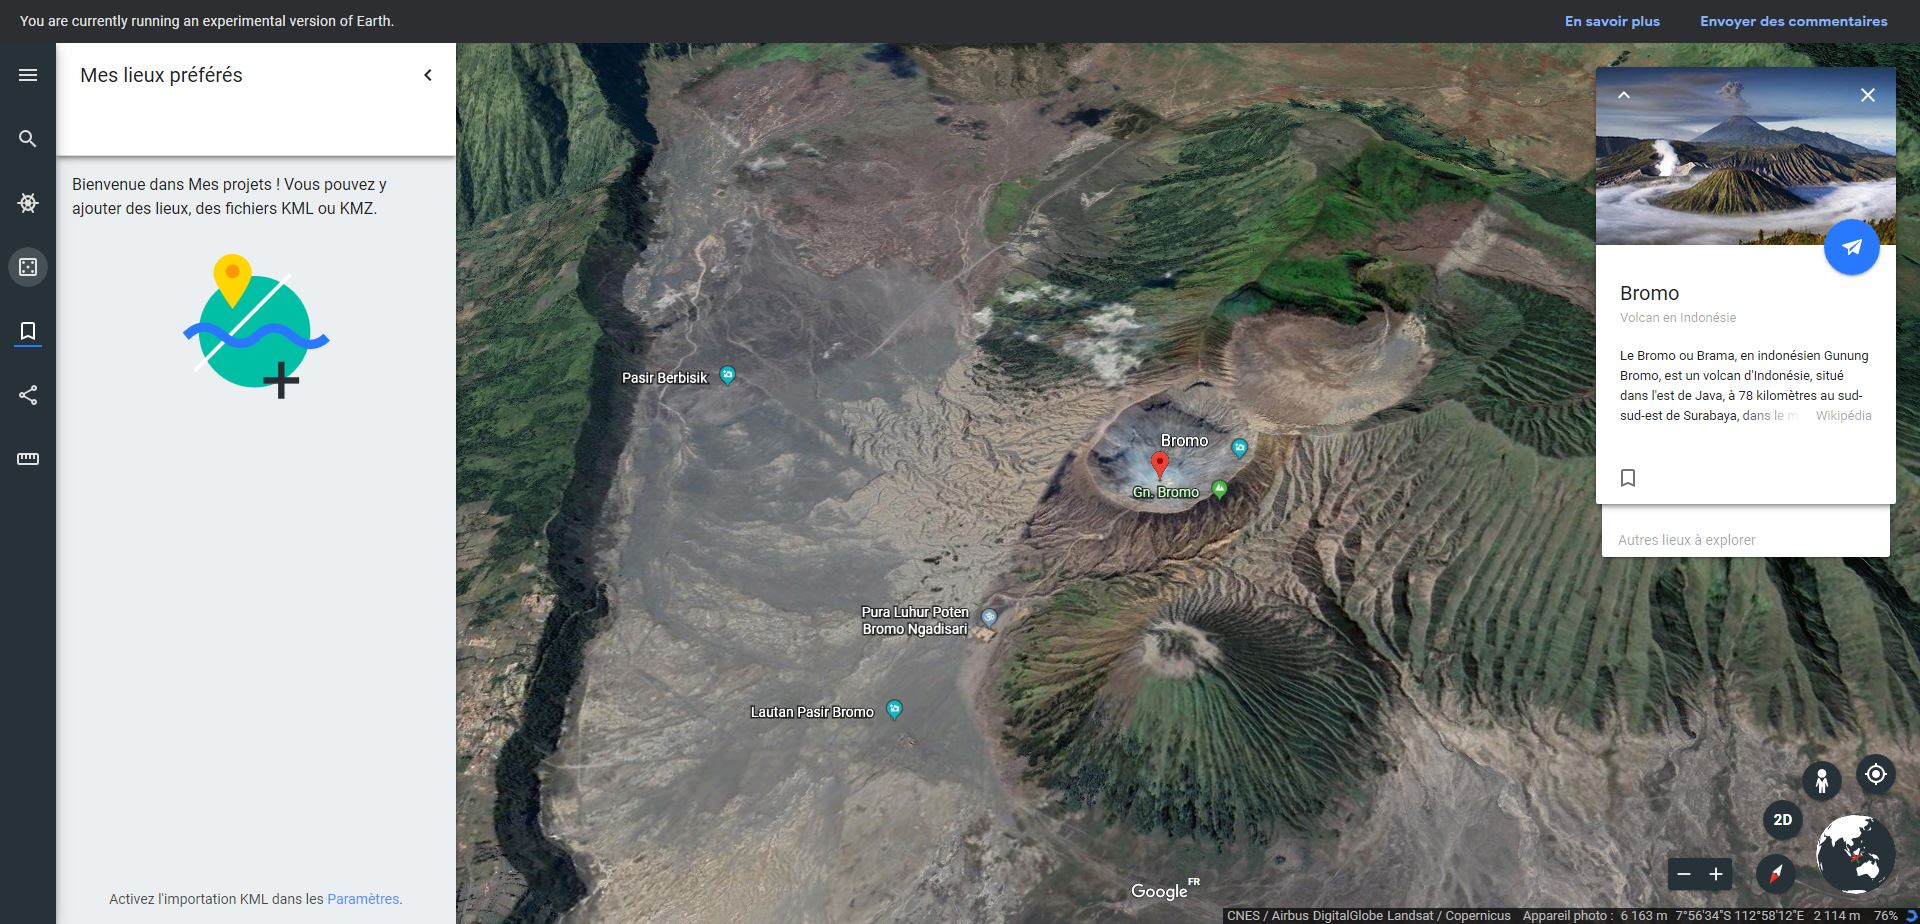 Nouveau Google Earth le 18 AVRIL 2017 - Page 3 Tsge_726